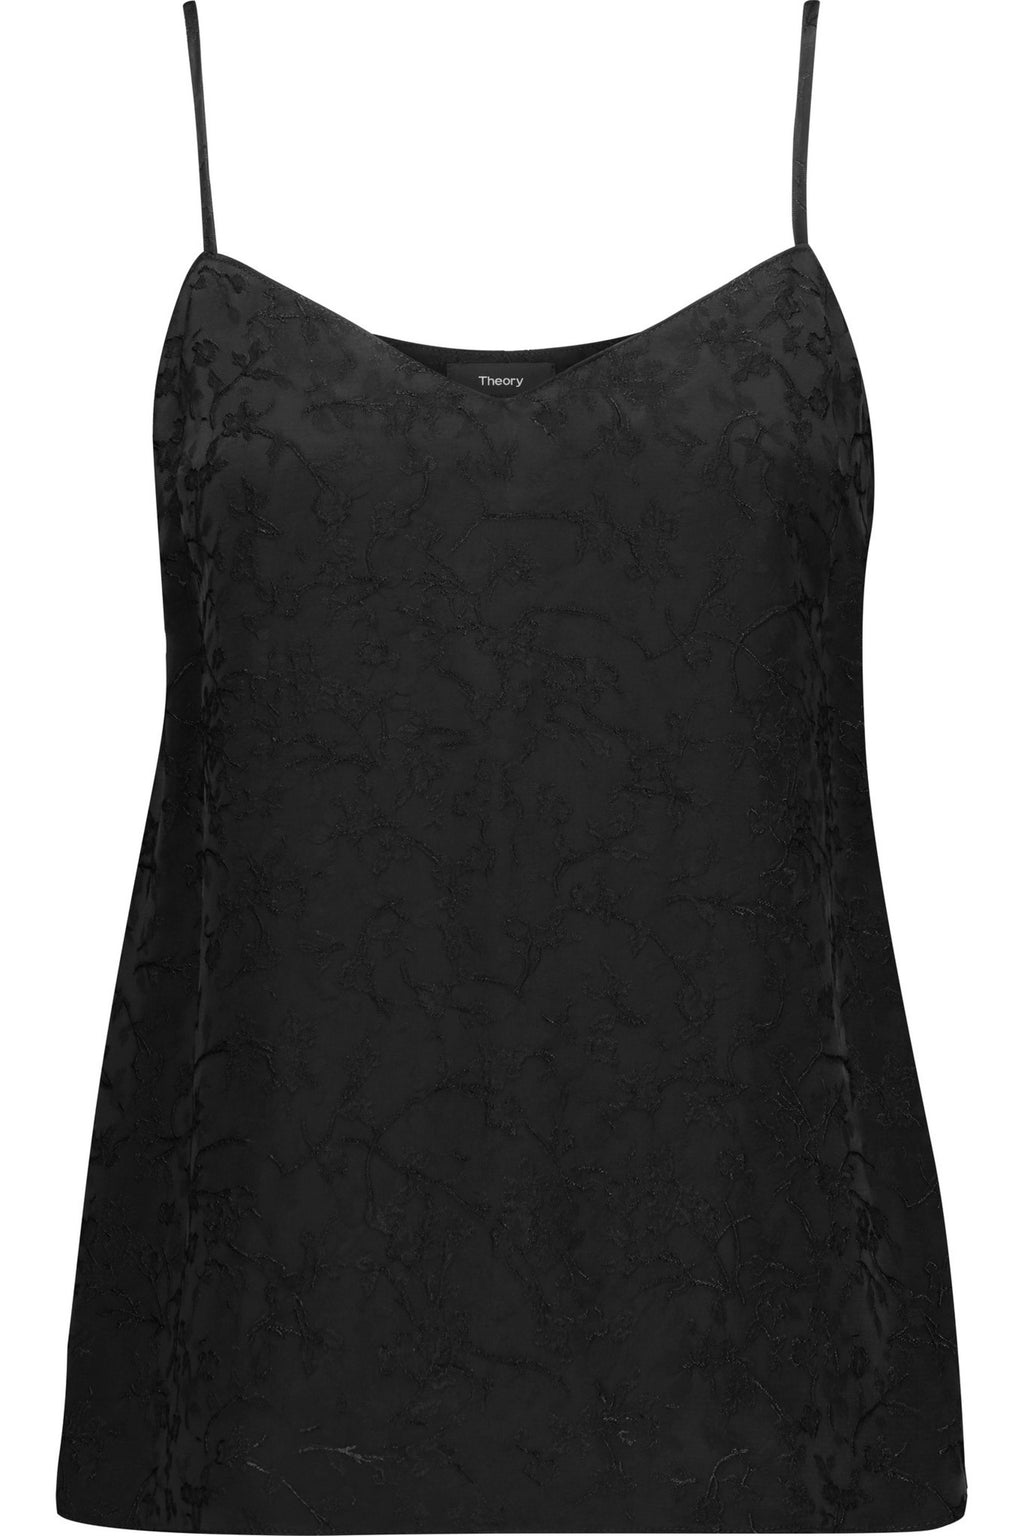 THEORY Sakshee Satin-jacquard Camisole Women Top